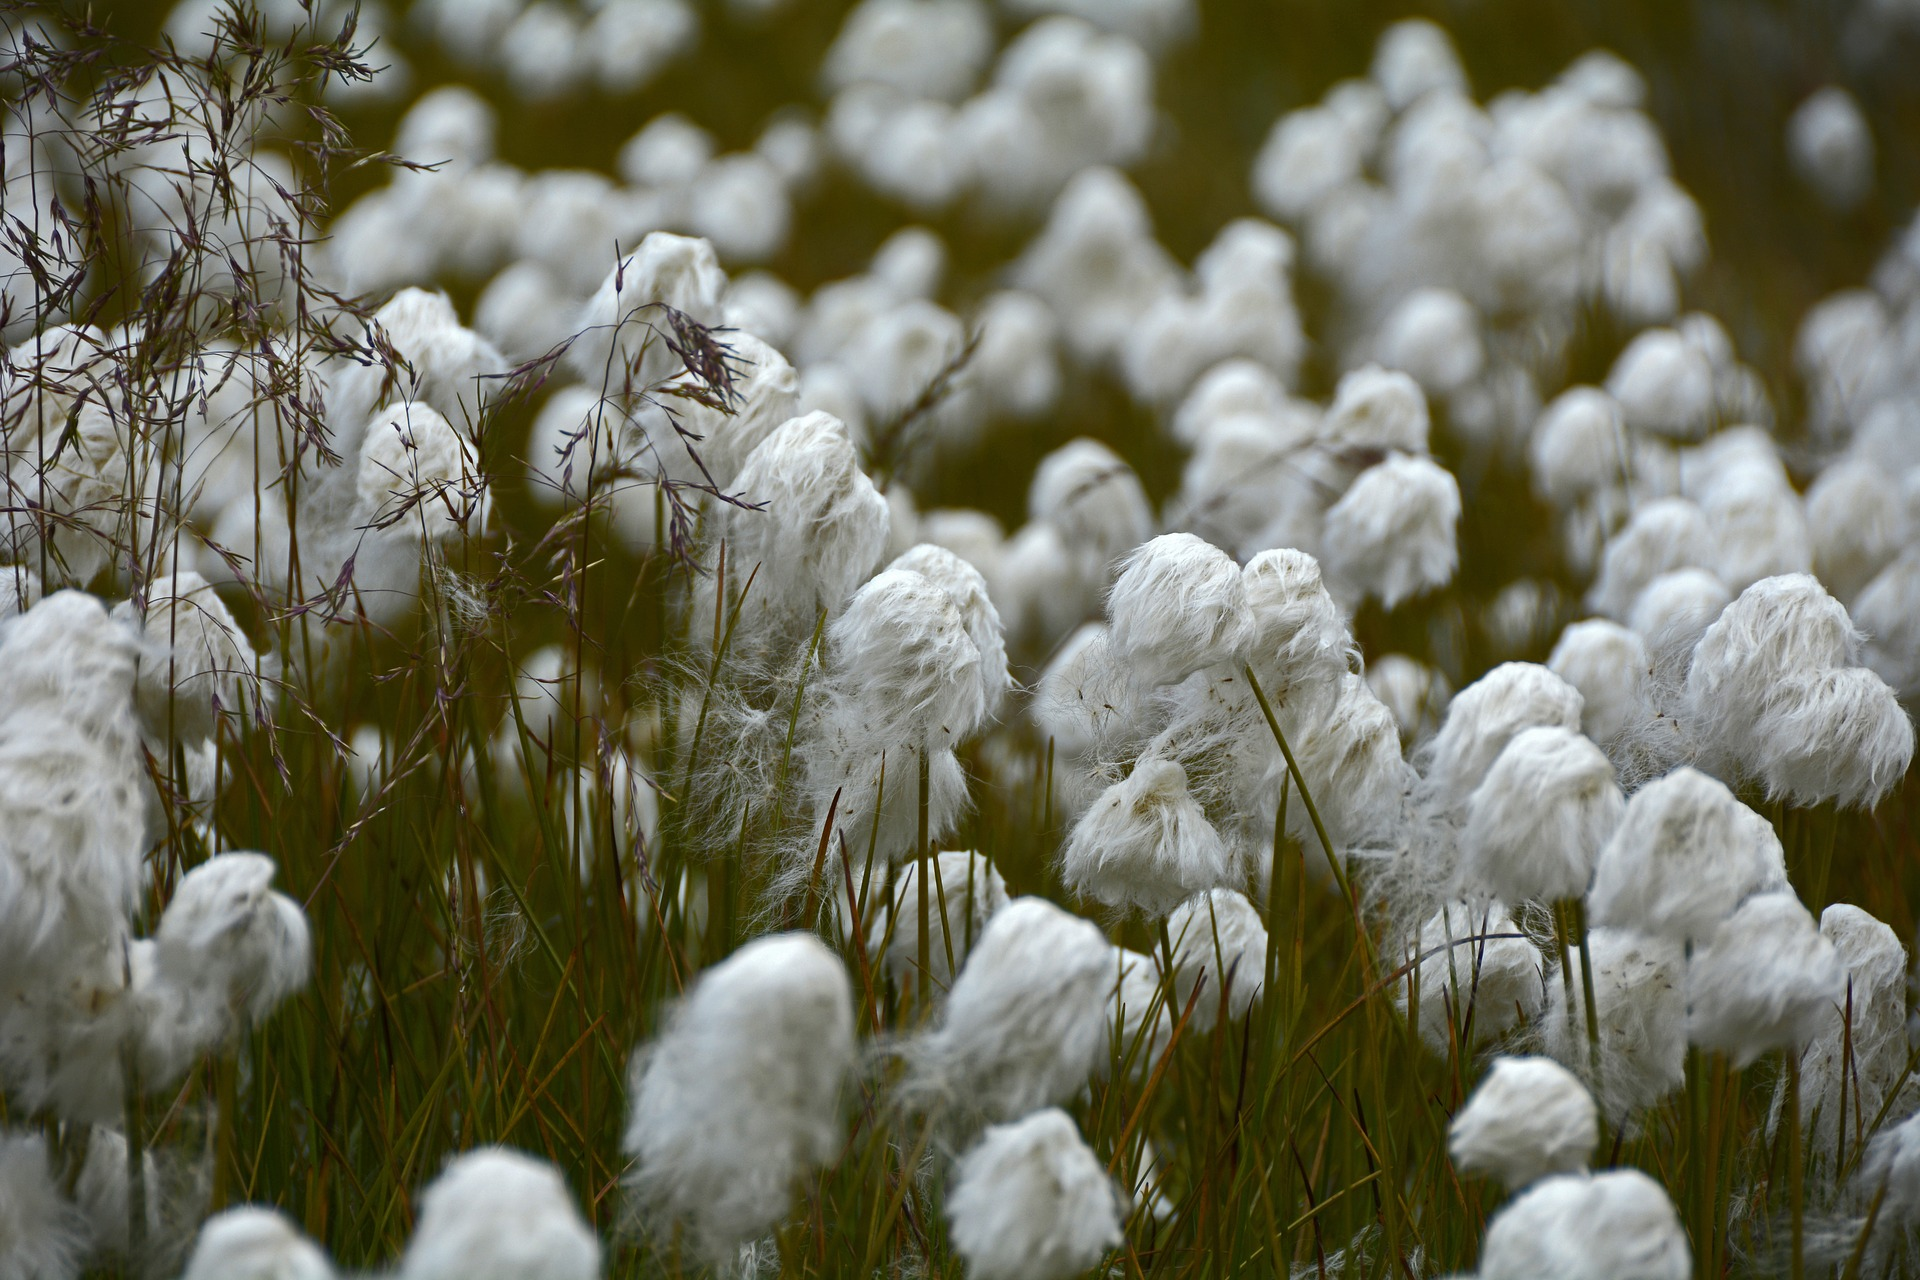 Bog cotton, cotton grass, or Lucky Minnie's Oo